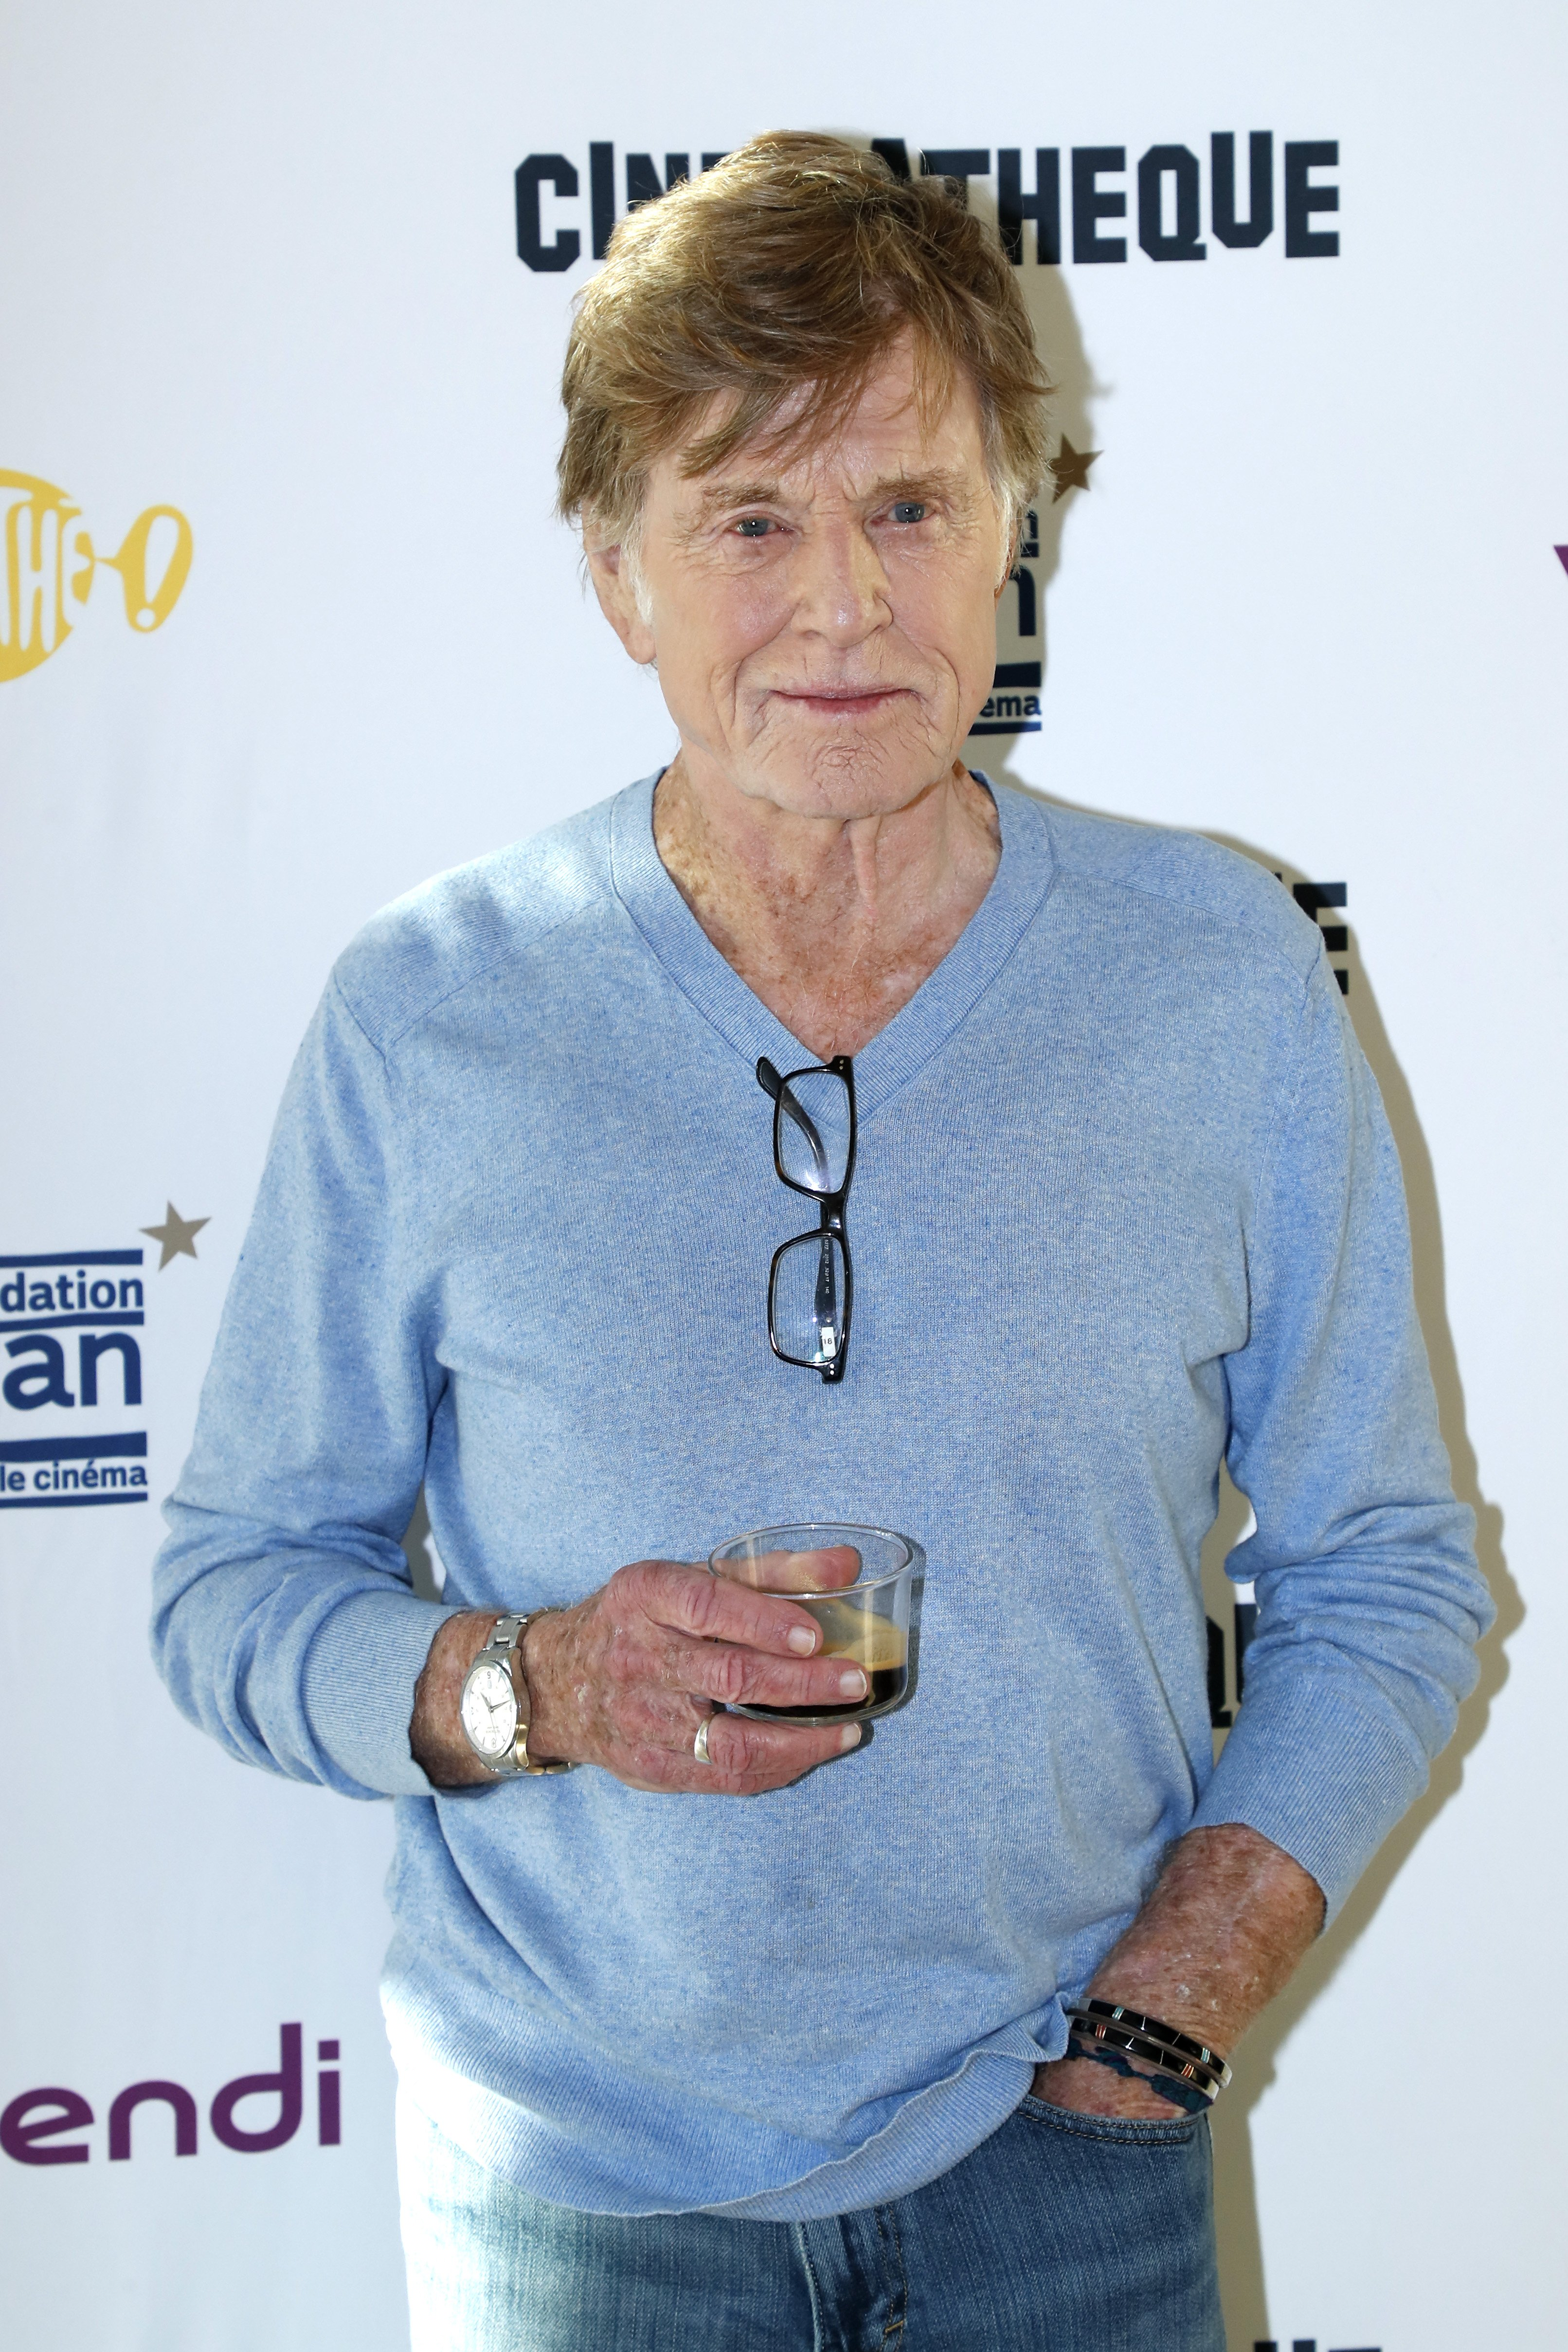 Image Credits: Getty Images / Bertrand Rindoff Petroff | Actor Robert Redford gives a Master Class at Cinematheque Francaise on February 21, 2019 in Paris, France.